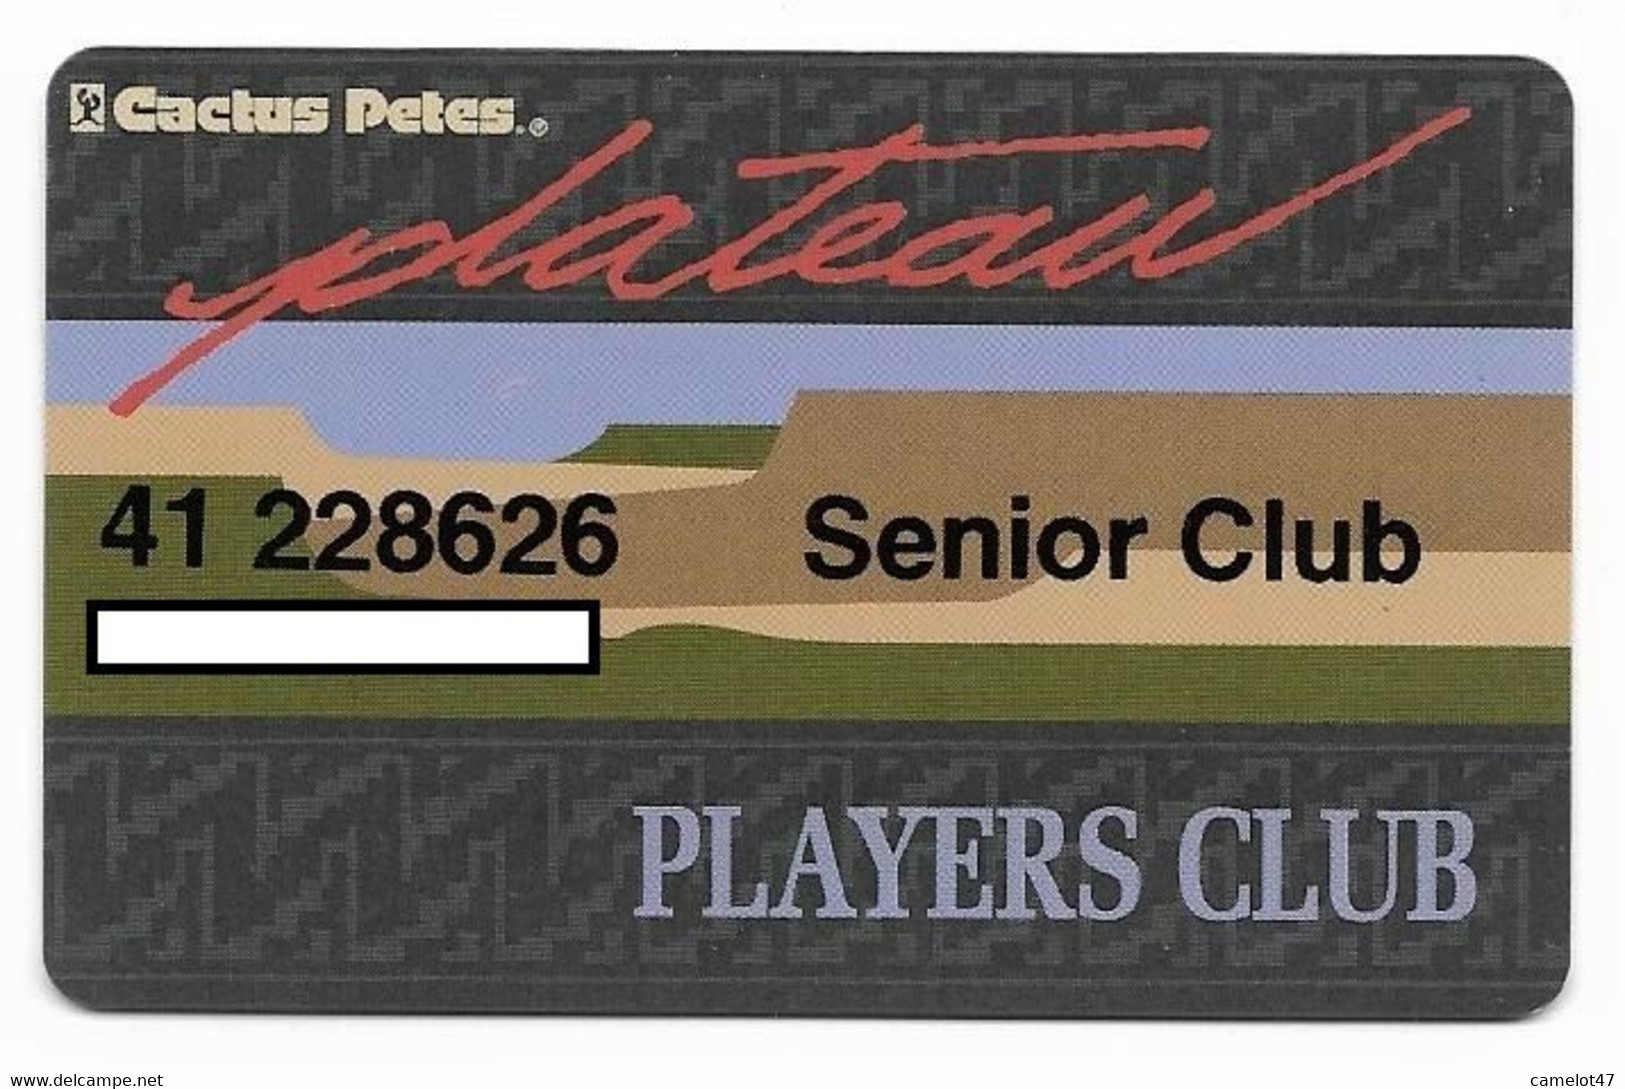 Cactus Pete's Casino, Jackpot, NV, U.S.A., Older Used Slot Or Player's Card, # Cactuspetes-1 - Casino Cards